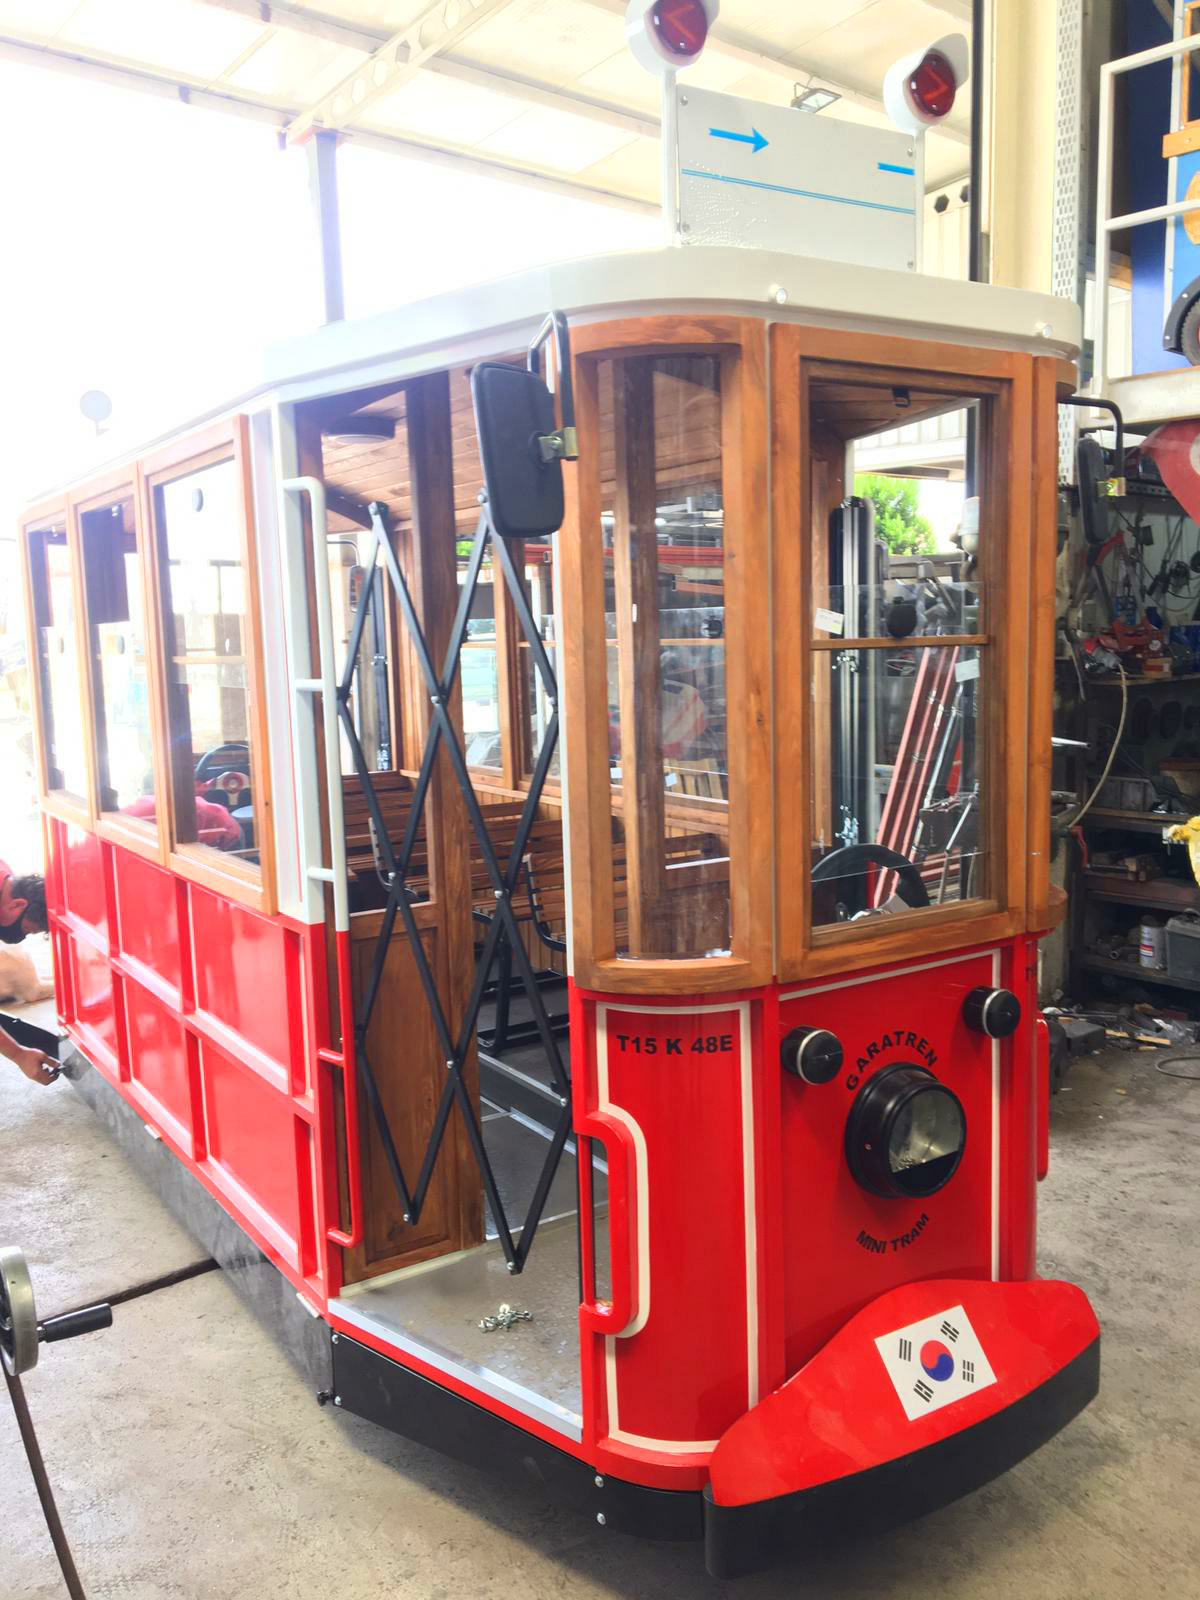 electric tram for kids